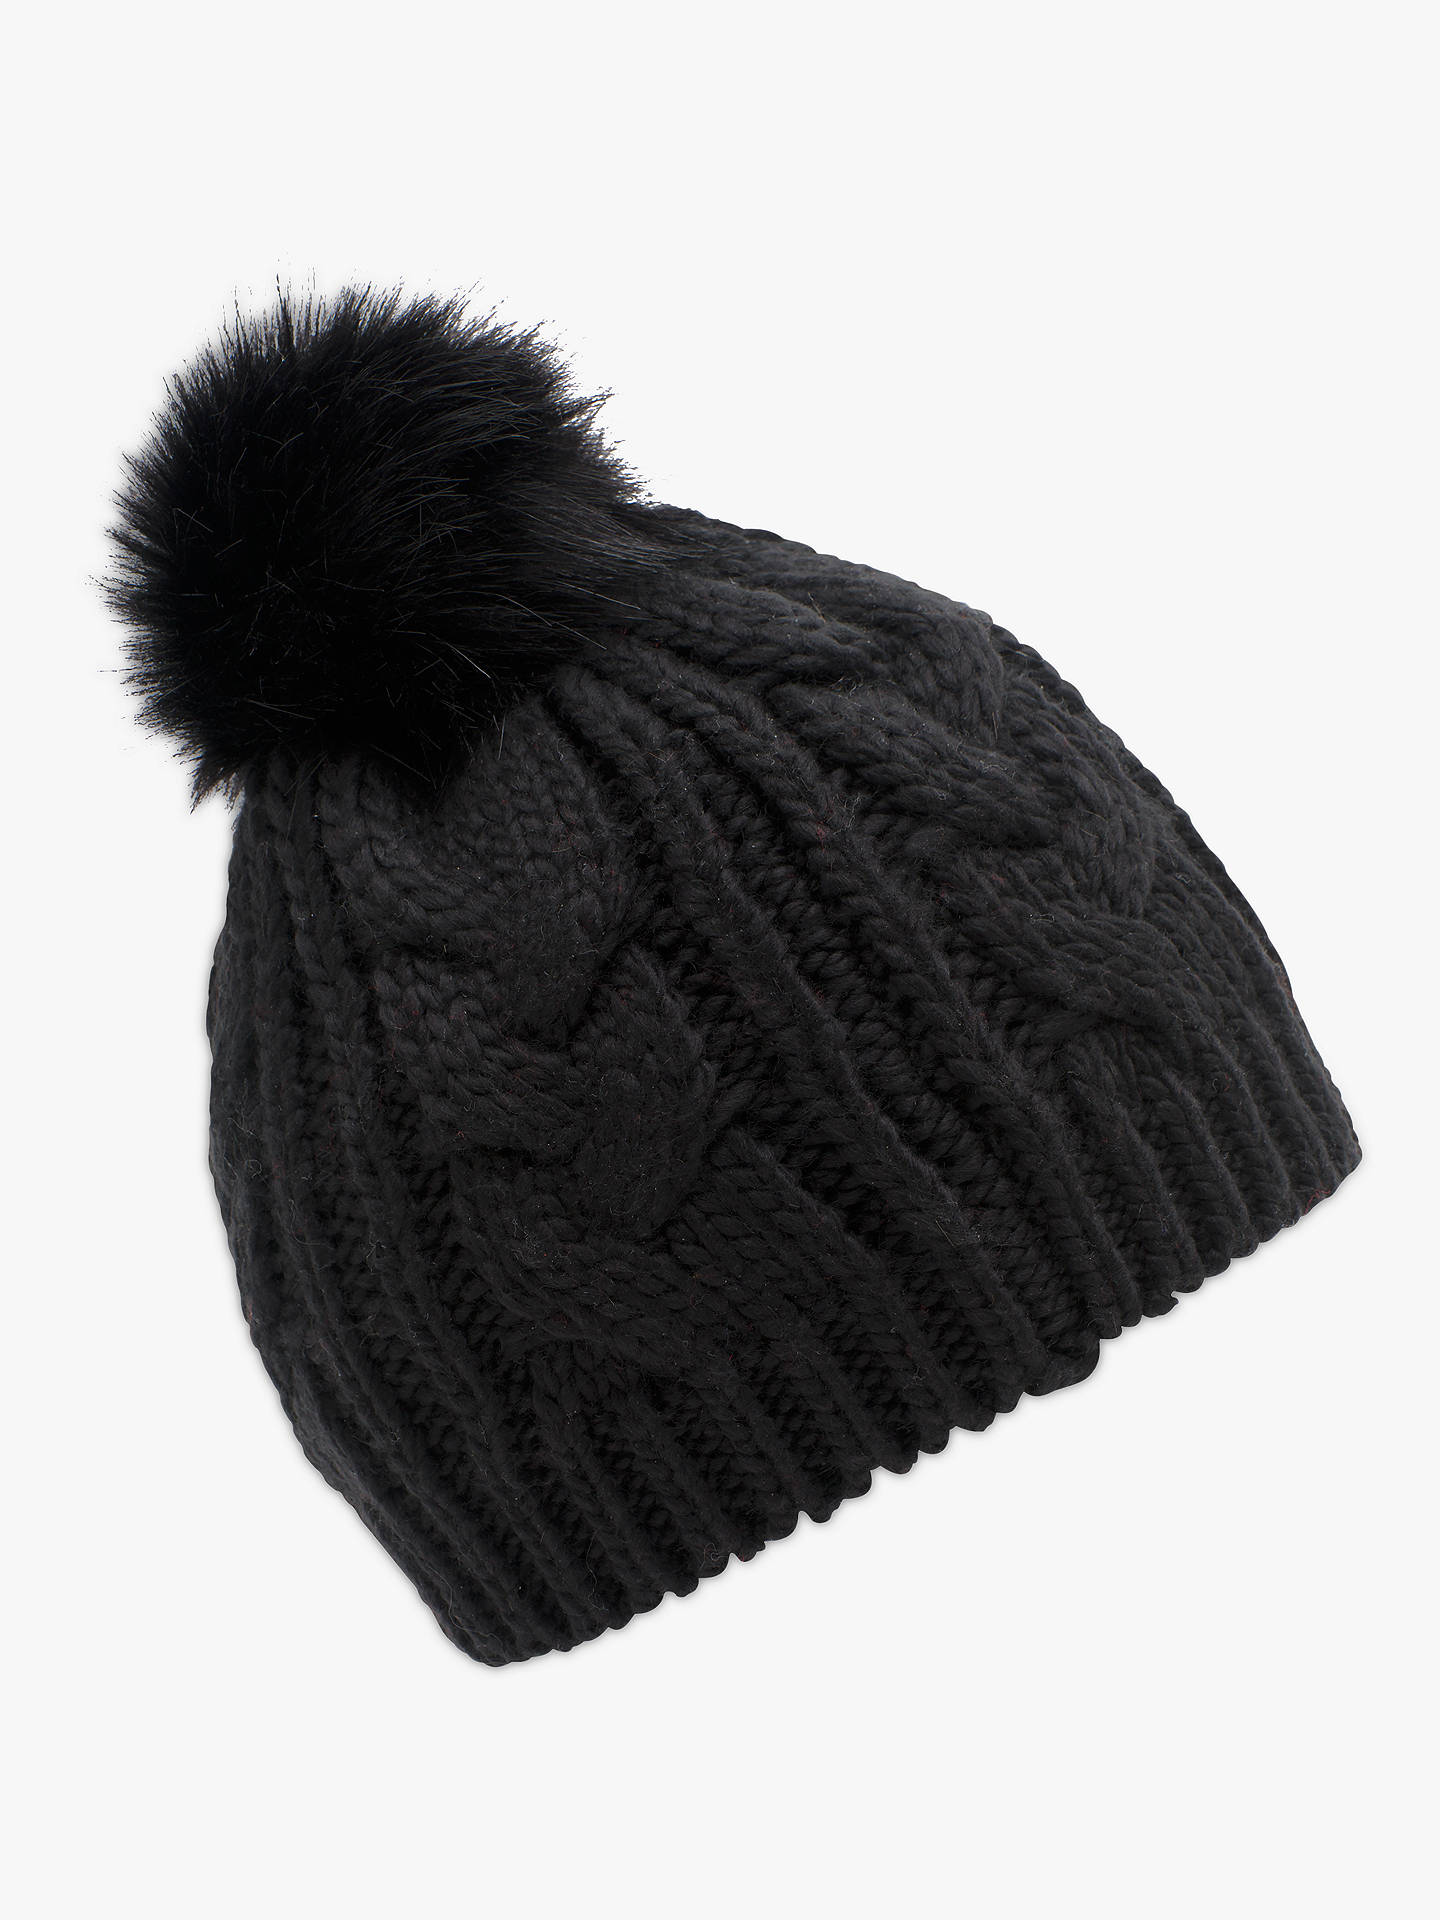 ... BuyFrench Connection Cable Knit Faux Fur Pom Pom Beanie Hat 620c69dd81a